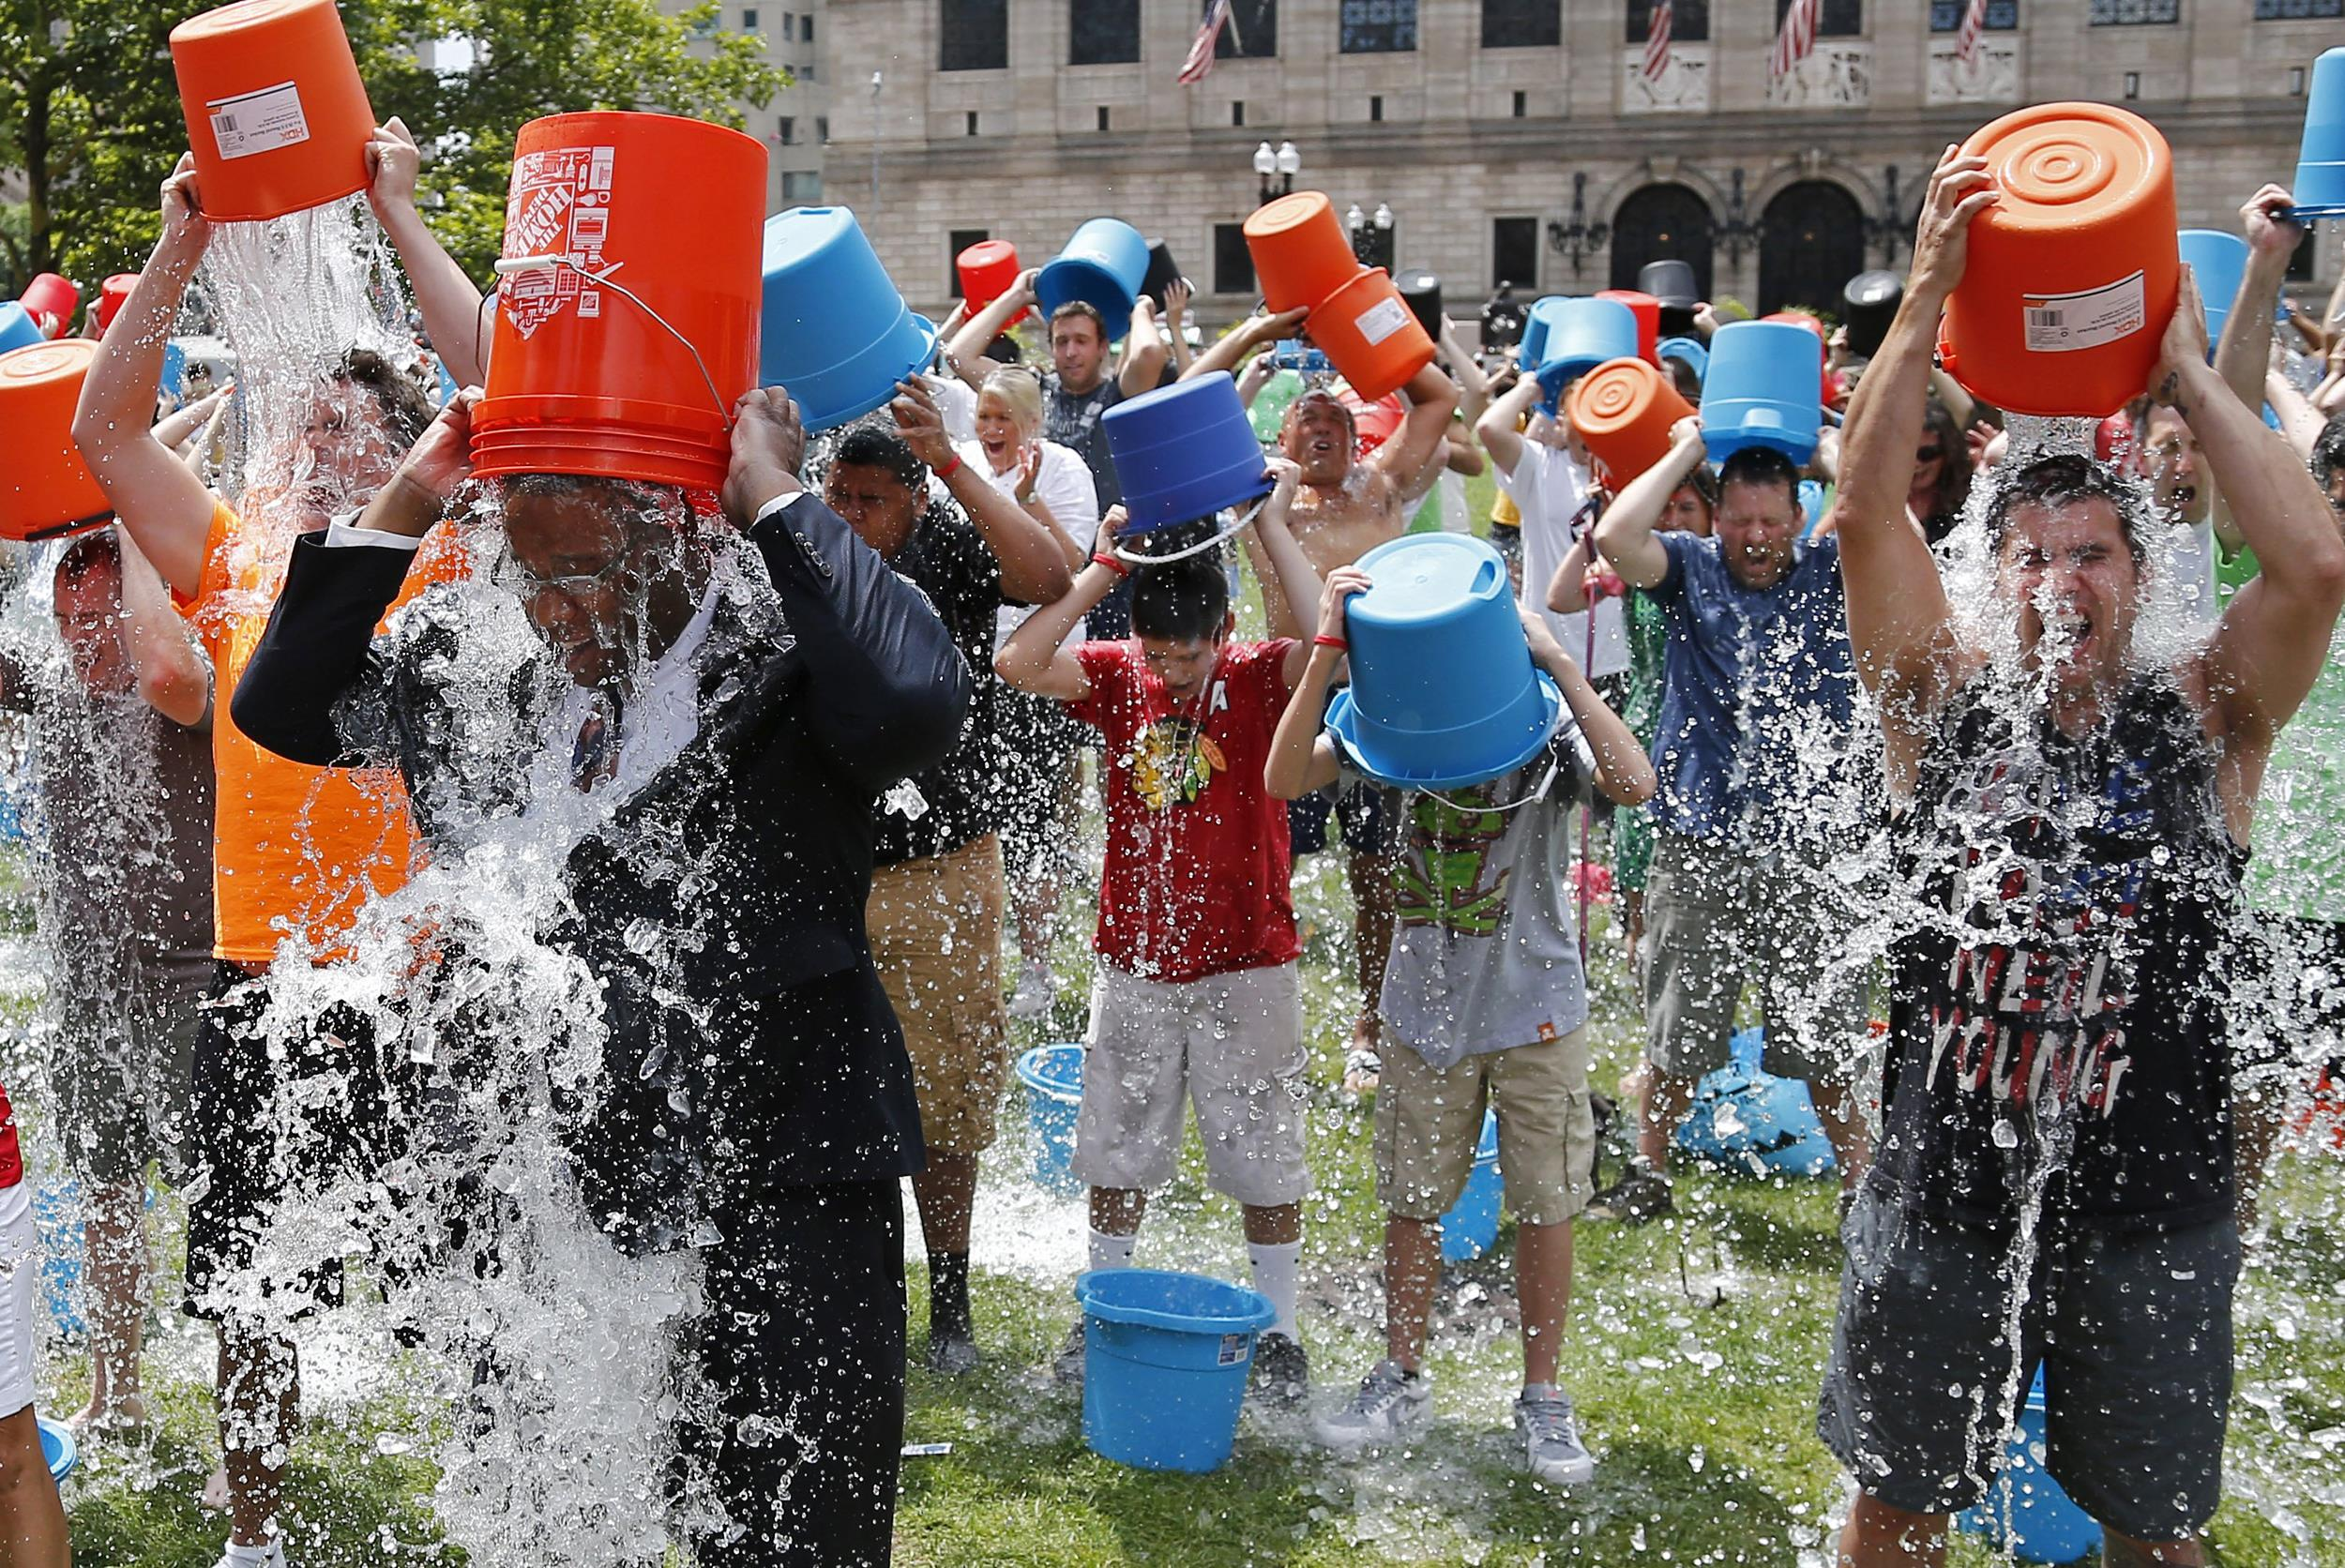 140811-boston-ice-bucket-challenge-1350_26906d39ac7ead702b45e5b7707b8dc6.jpg